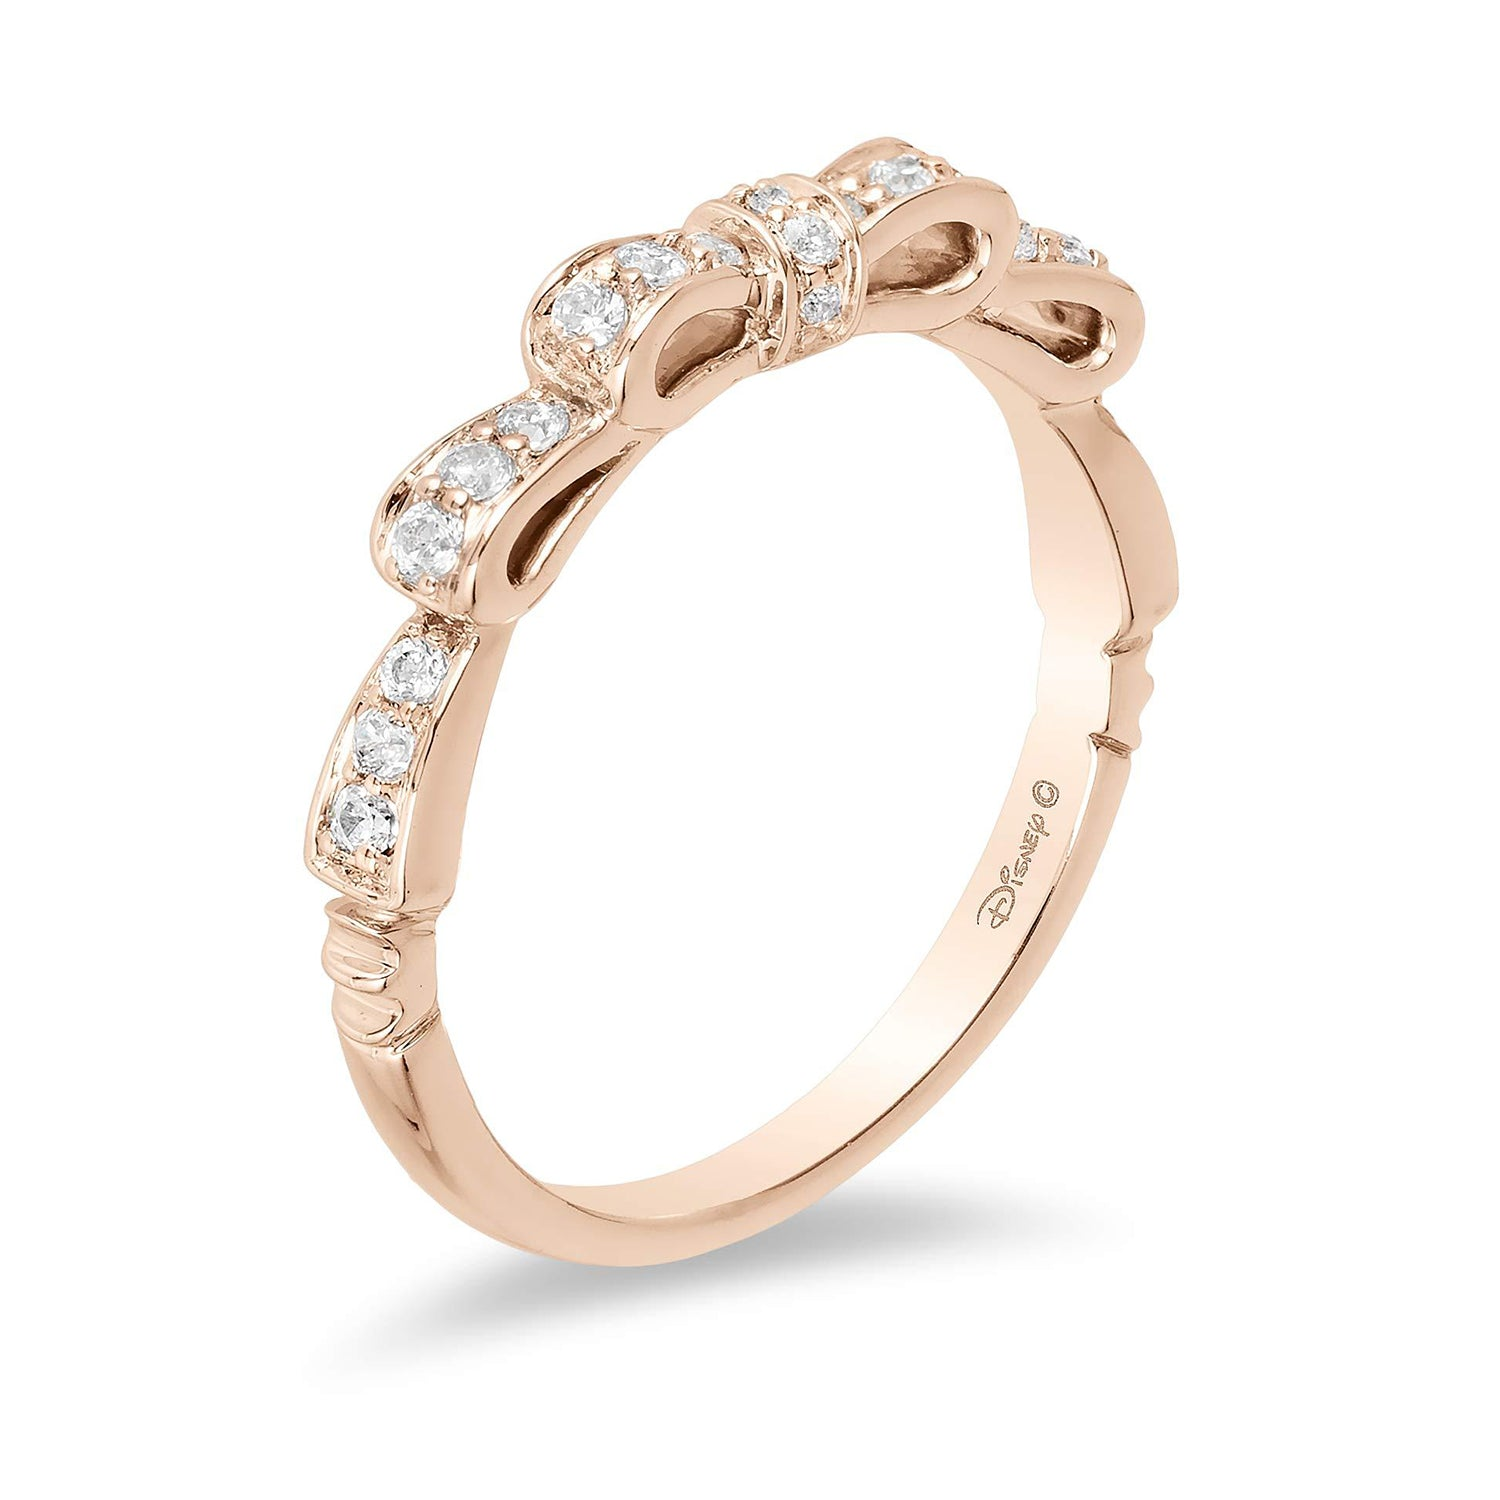 enchanted_disney-snow-white_bow_ring-14k_rose_gold_1/4CTTW_2